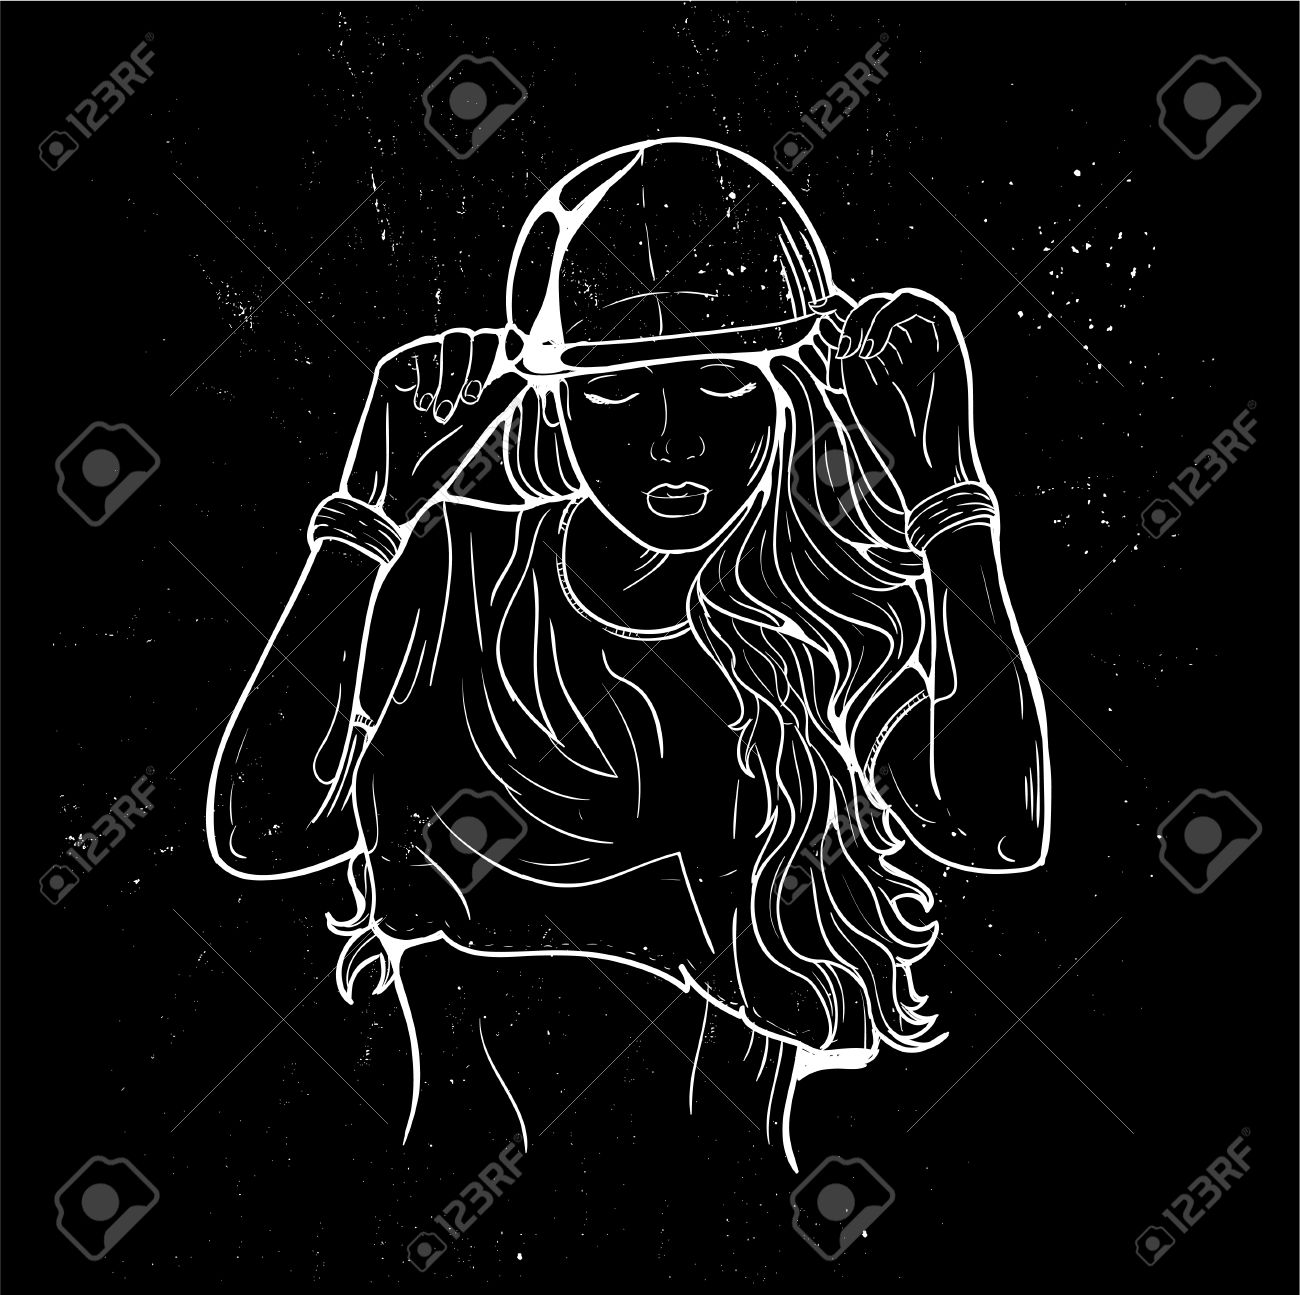 Rap music girl  Pretty Young Urban Rap Girl  Lady Vector artwork,